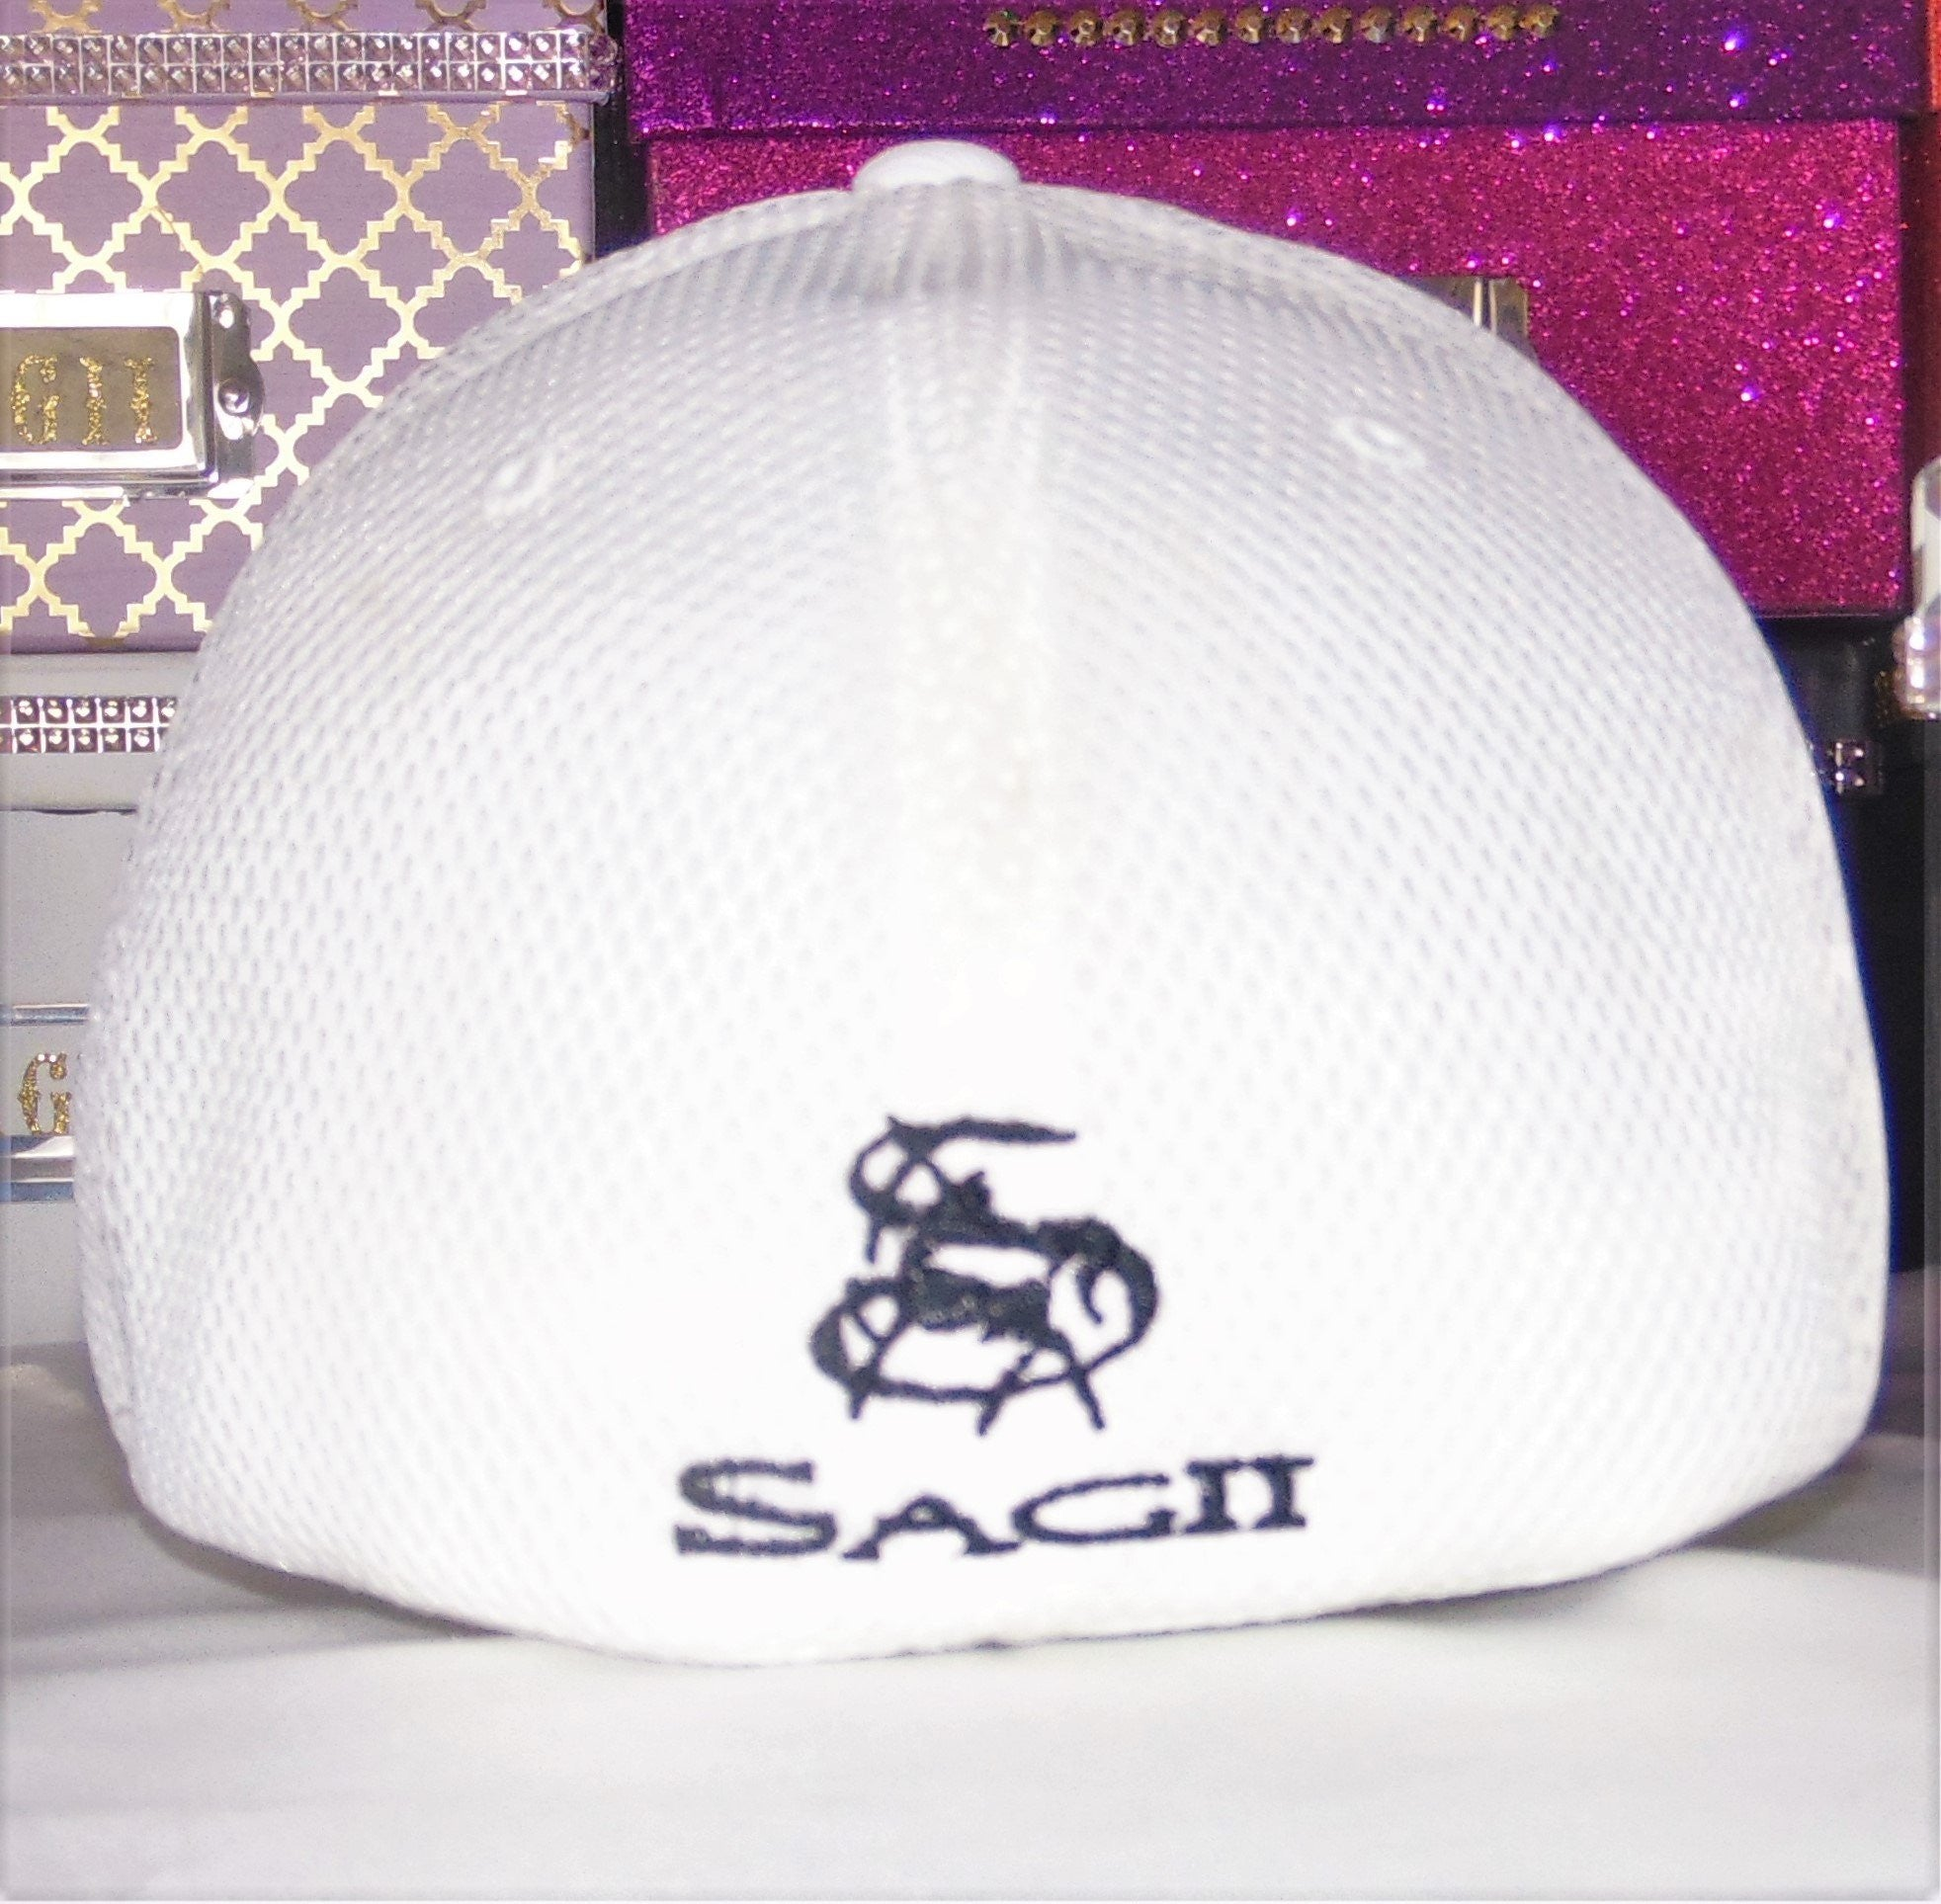 Hats - Sagii black & white - sagii-store